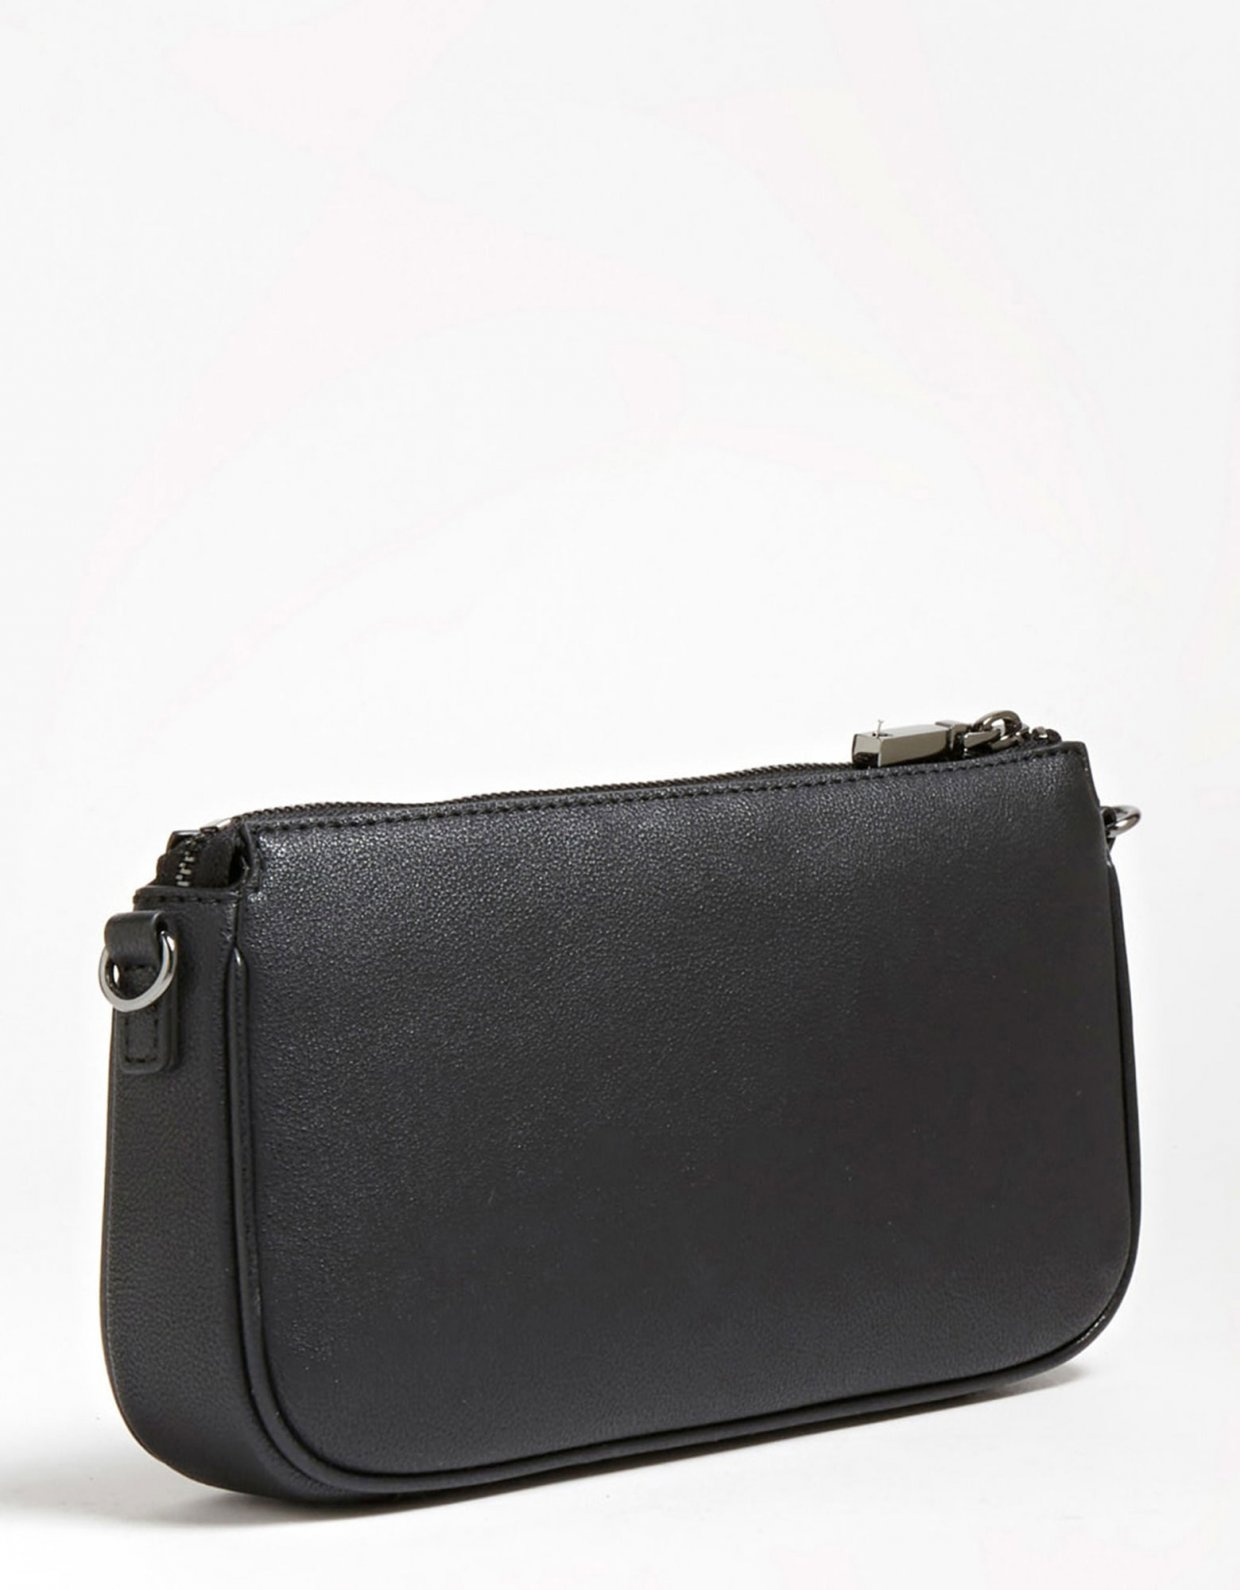 Guess Mika double pouch crossbody black